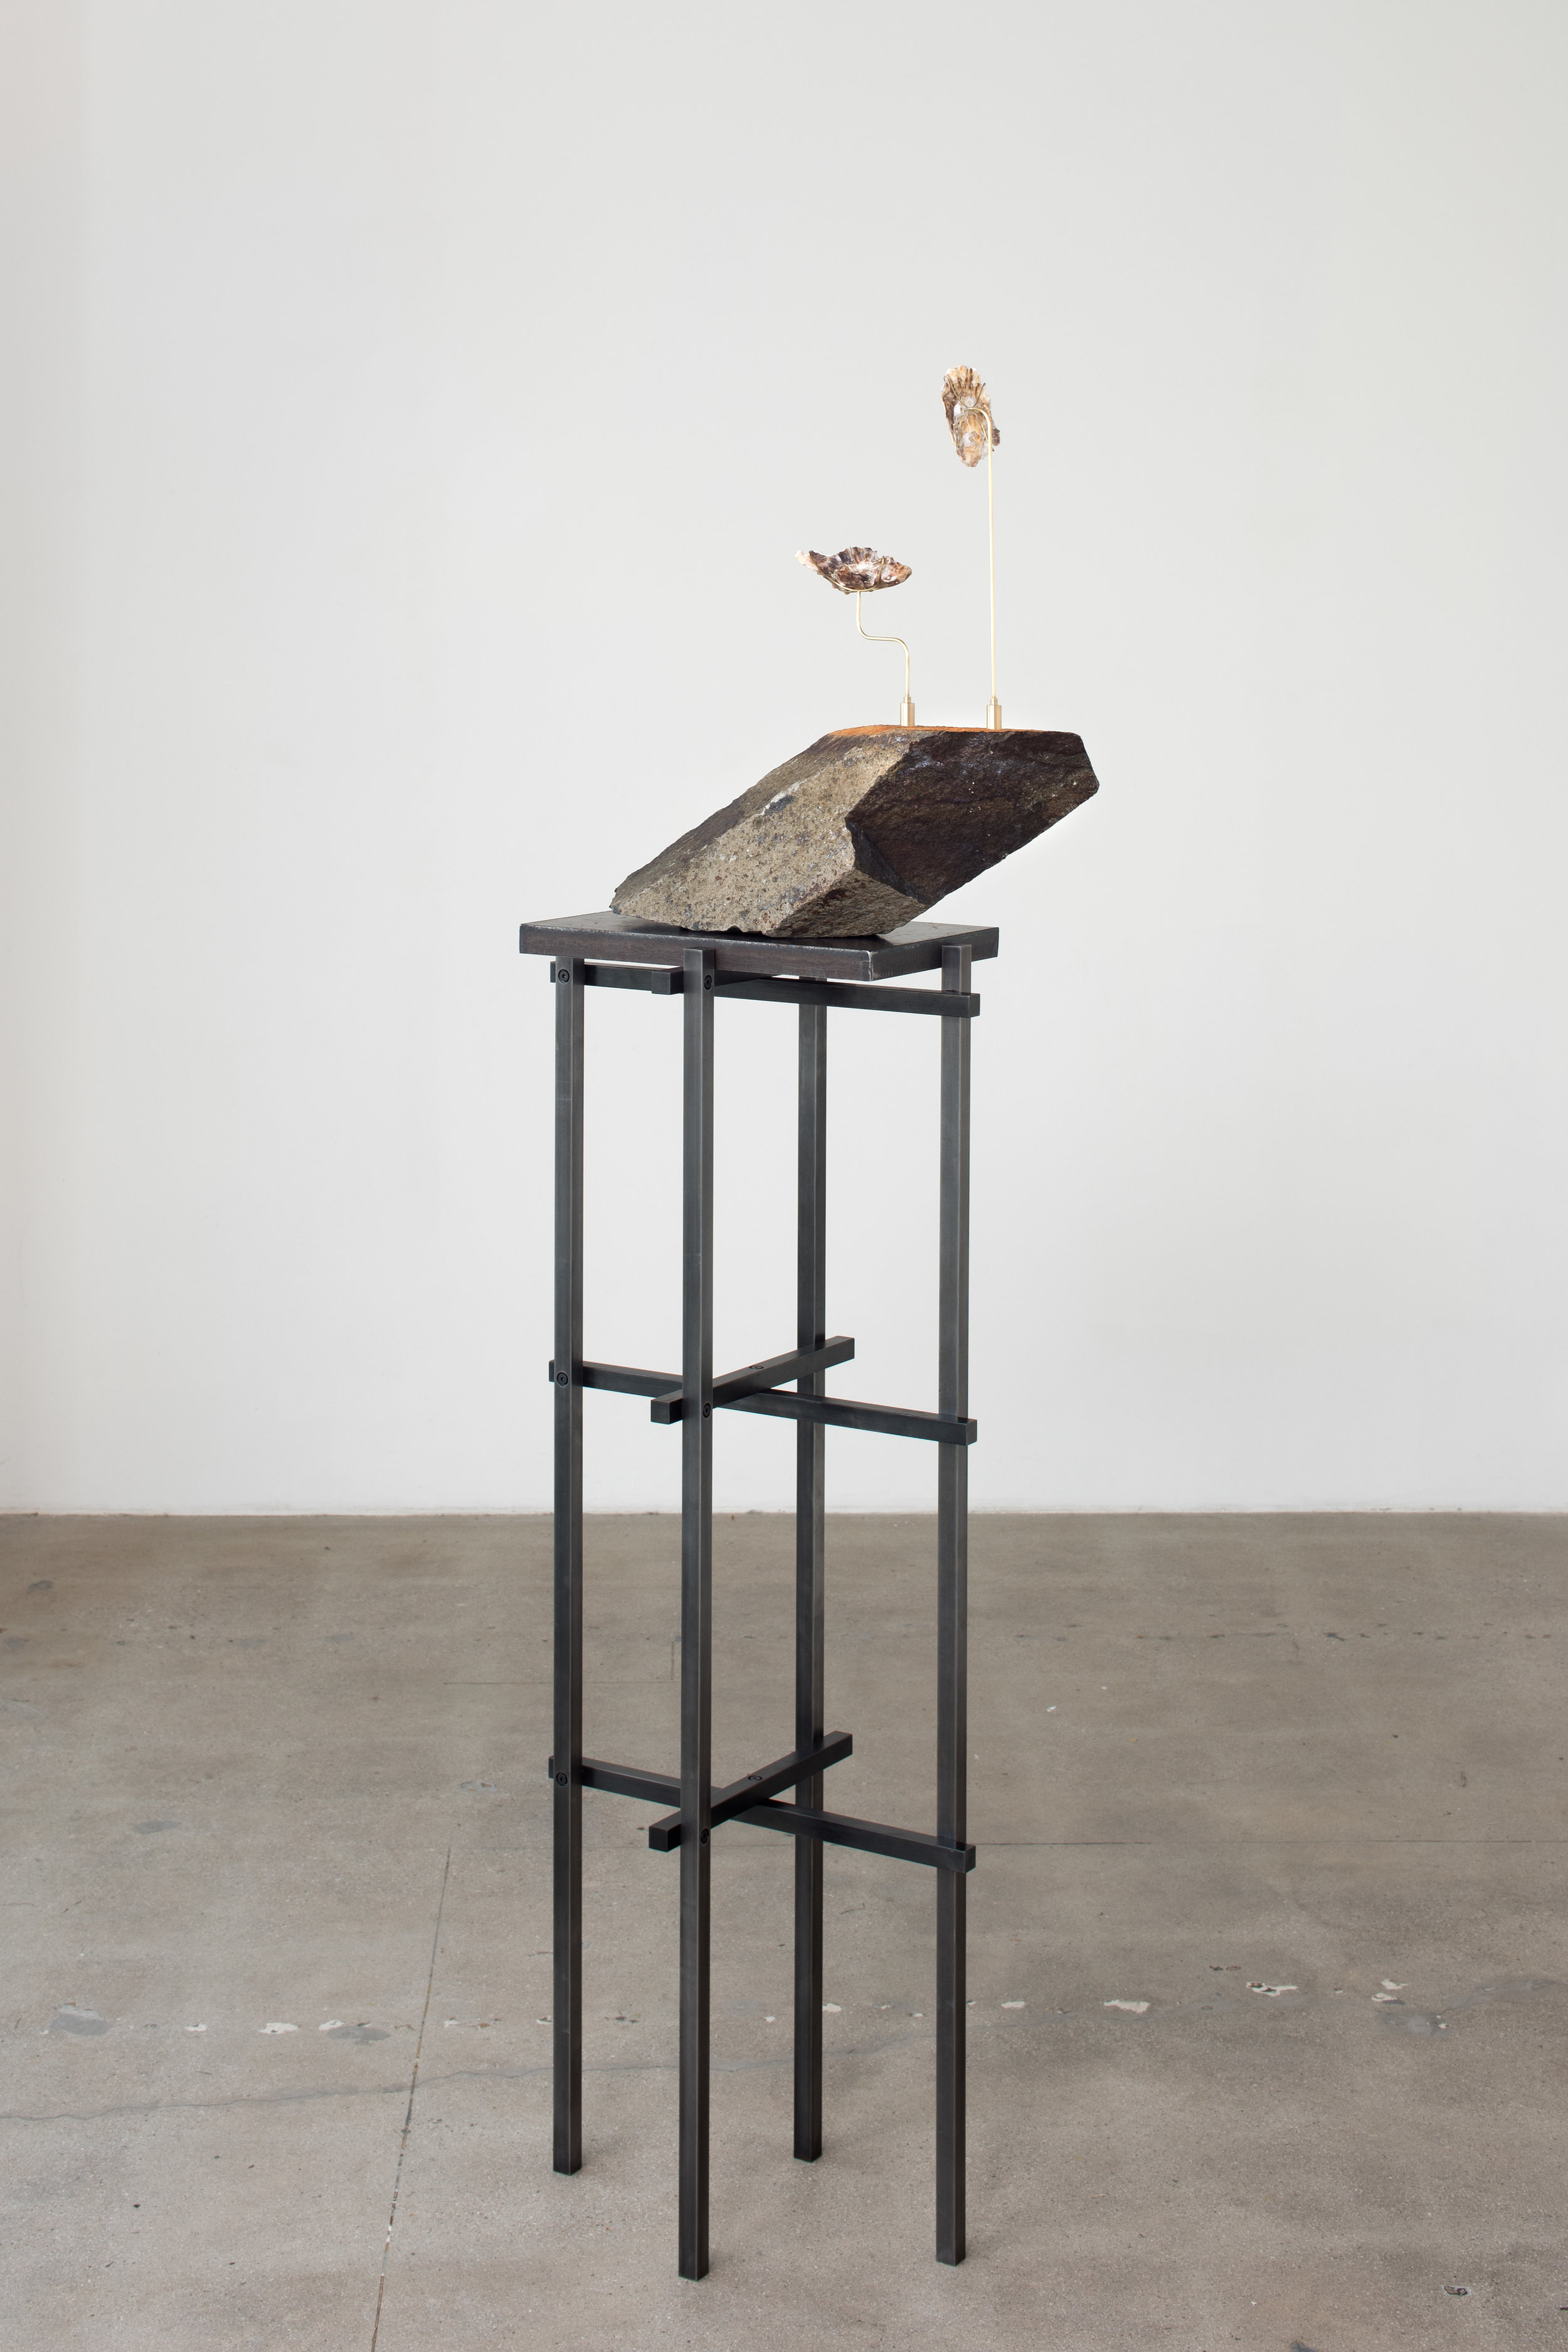 Stone Rafts Floating In A Sea of Magma , 2018 Steel, basalt, brass, oyster shells, and hardware 63 1/2 x 20 x 8 3/4 inches